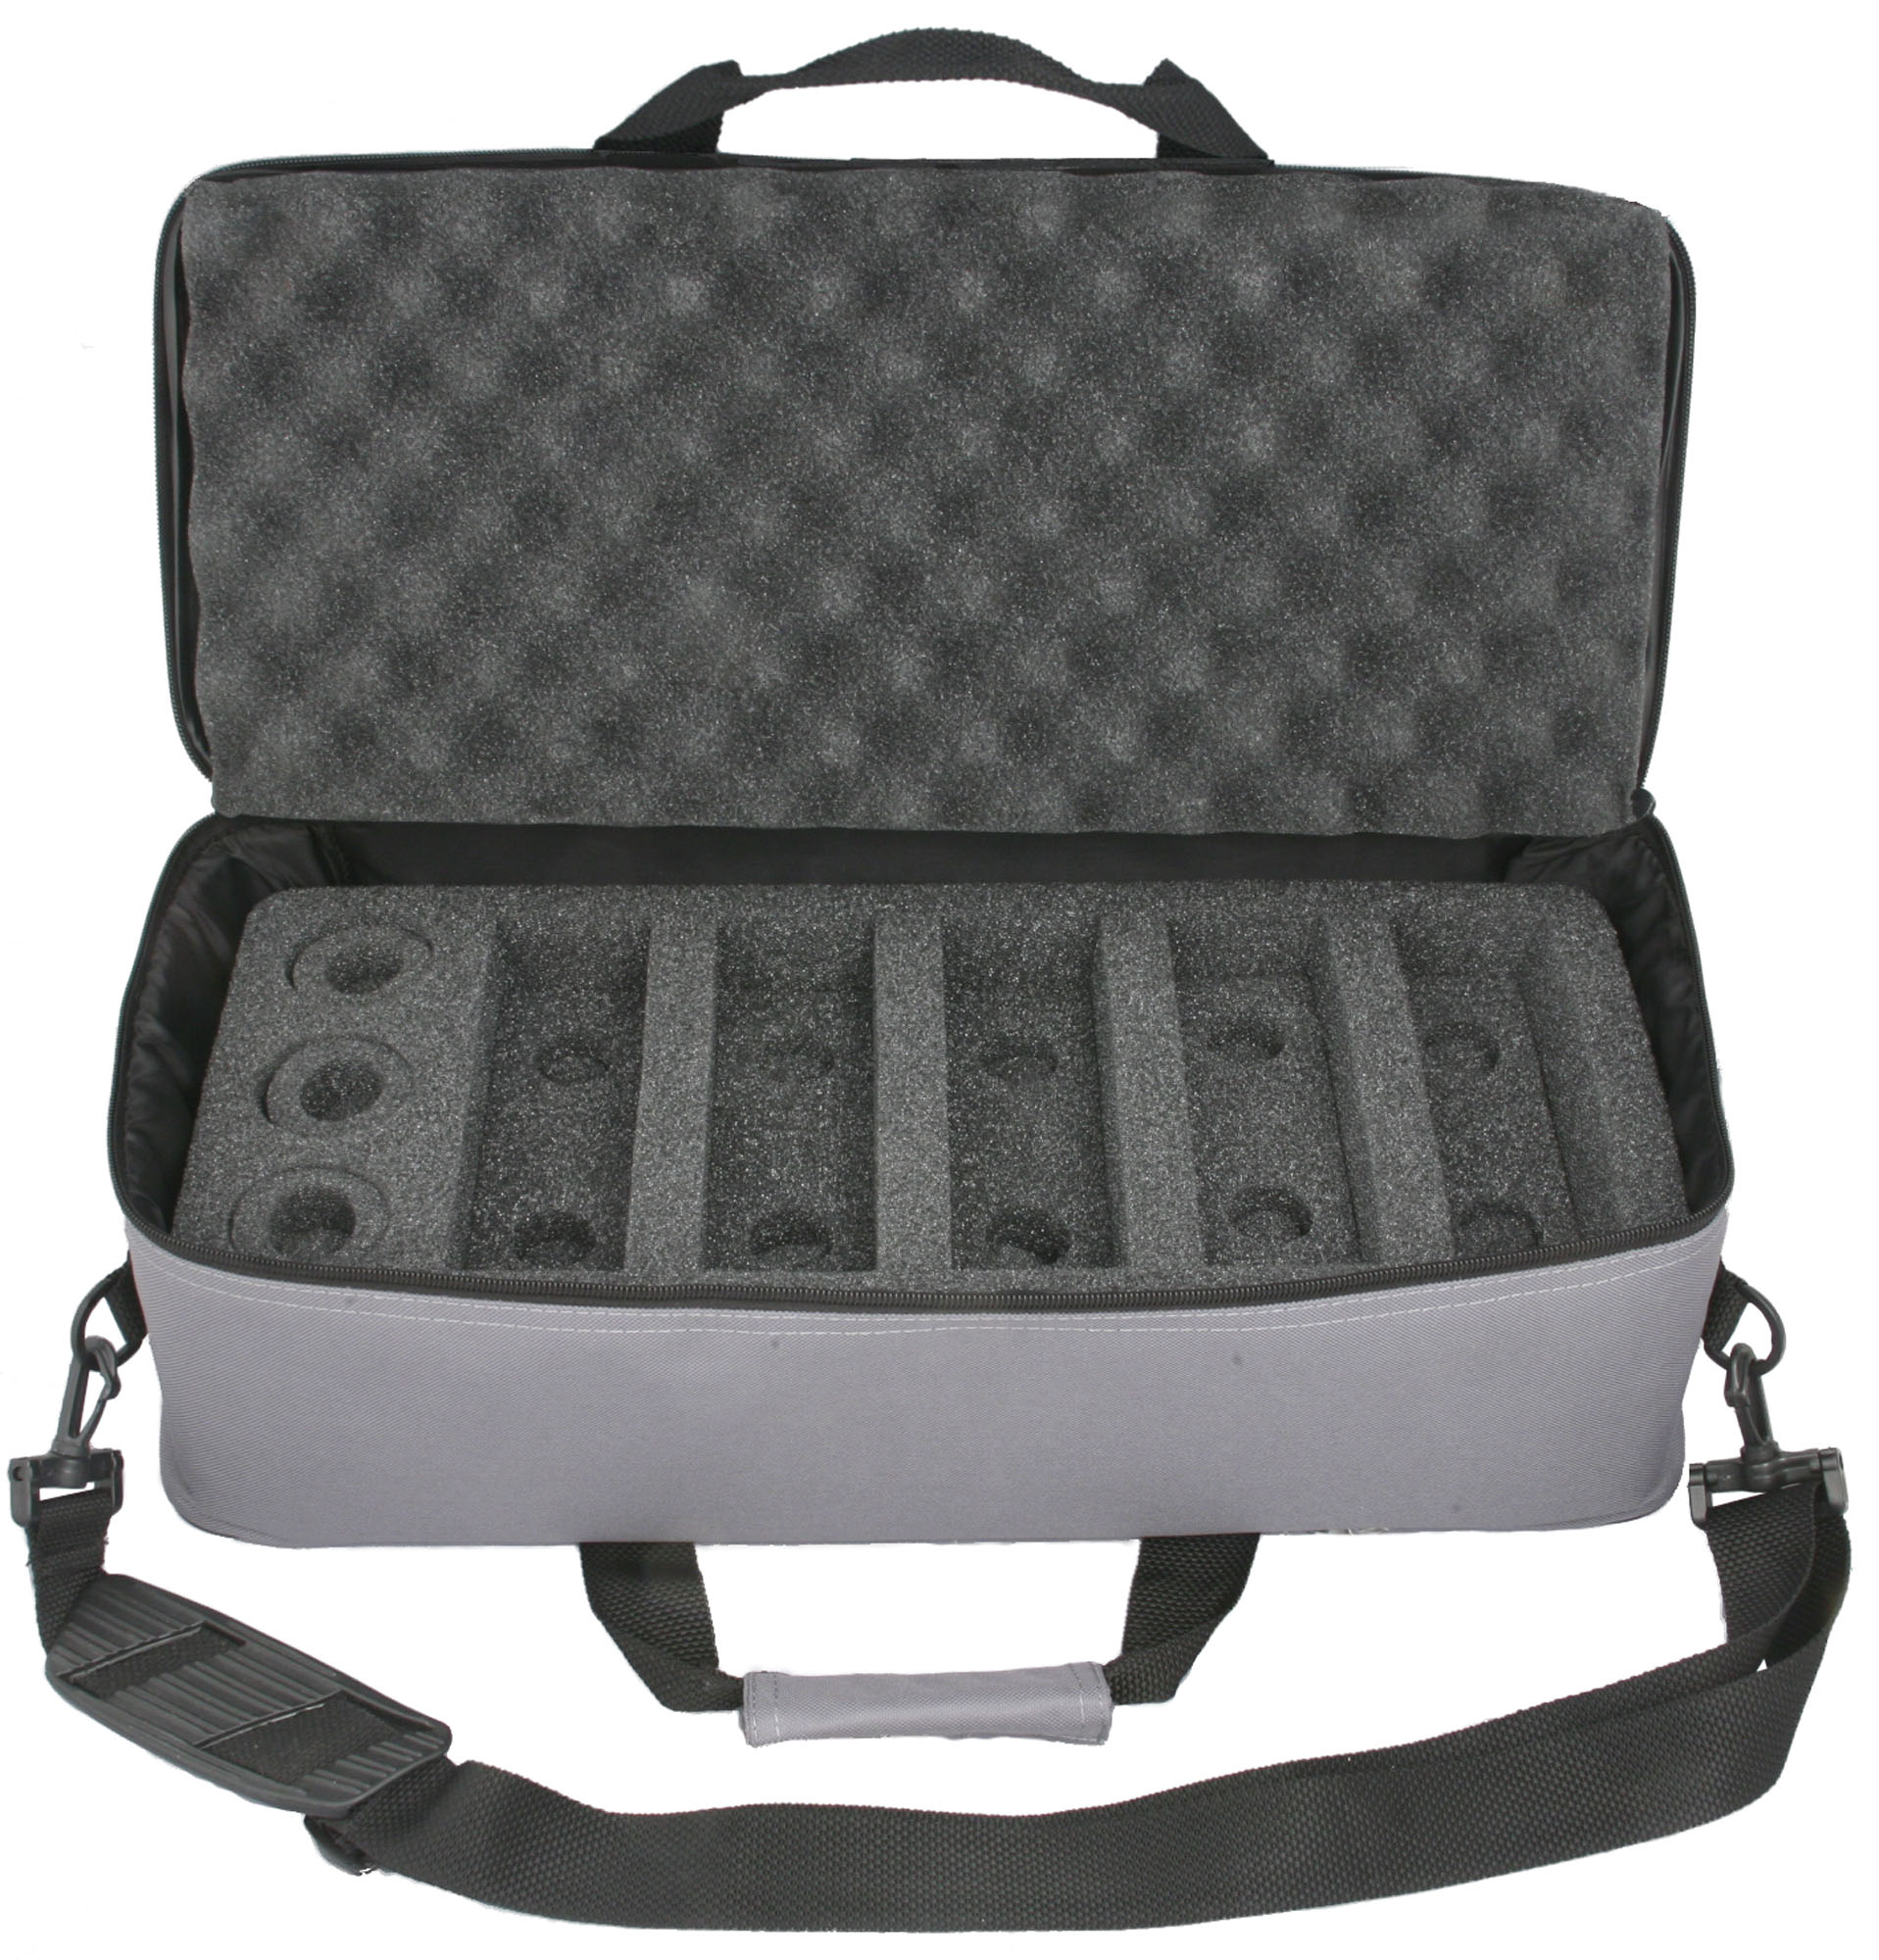 Tele Vue Ethos Eyepiece Carry Bag